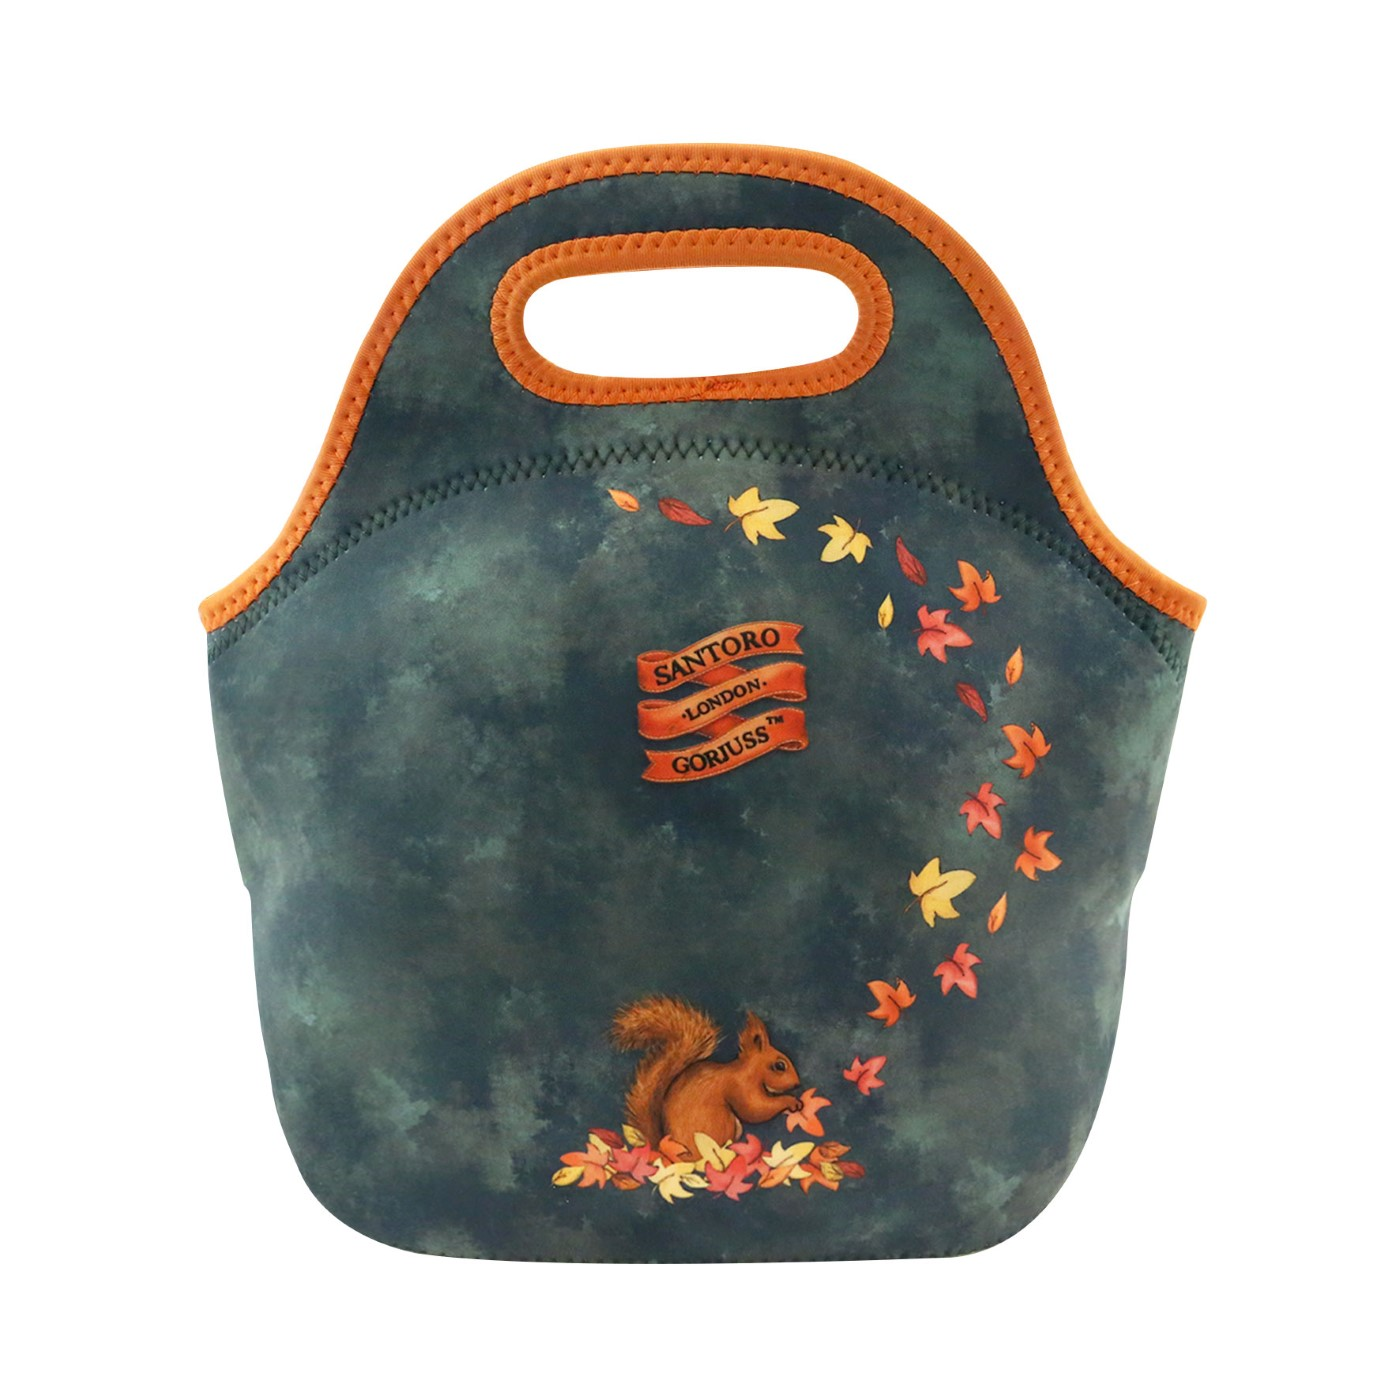 Santoro Neoprene Bag Gorjuss Autumn Leaves